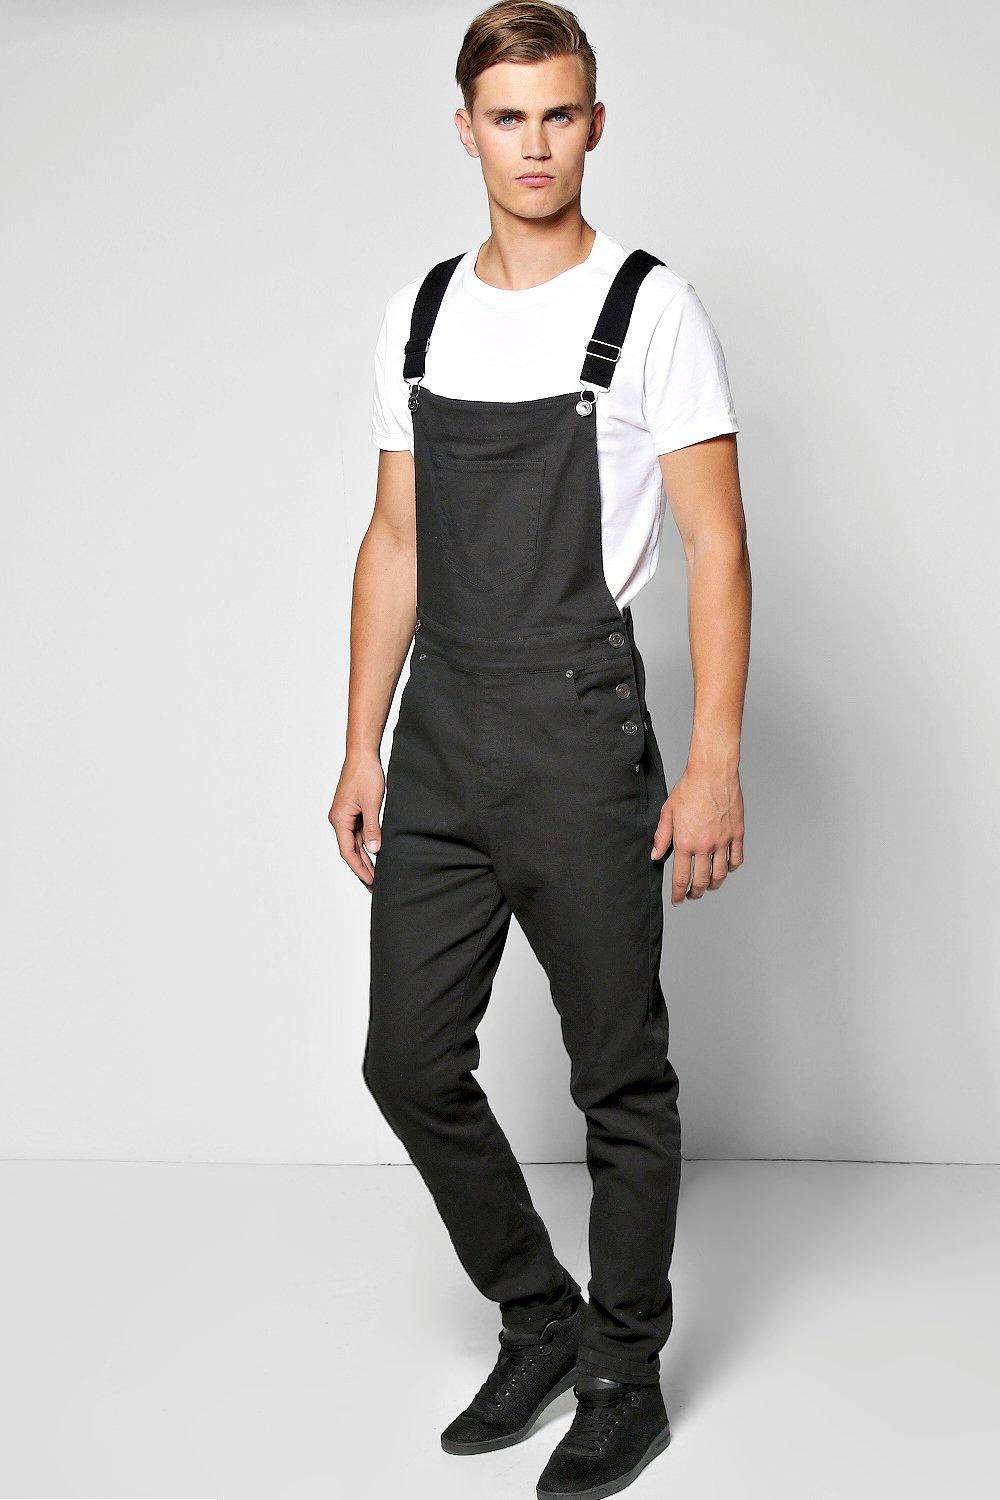 boohooMAN black Slim Fit Denim Dungarees